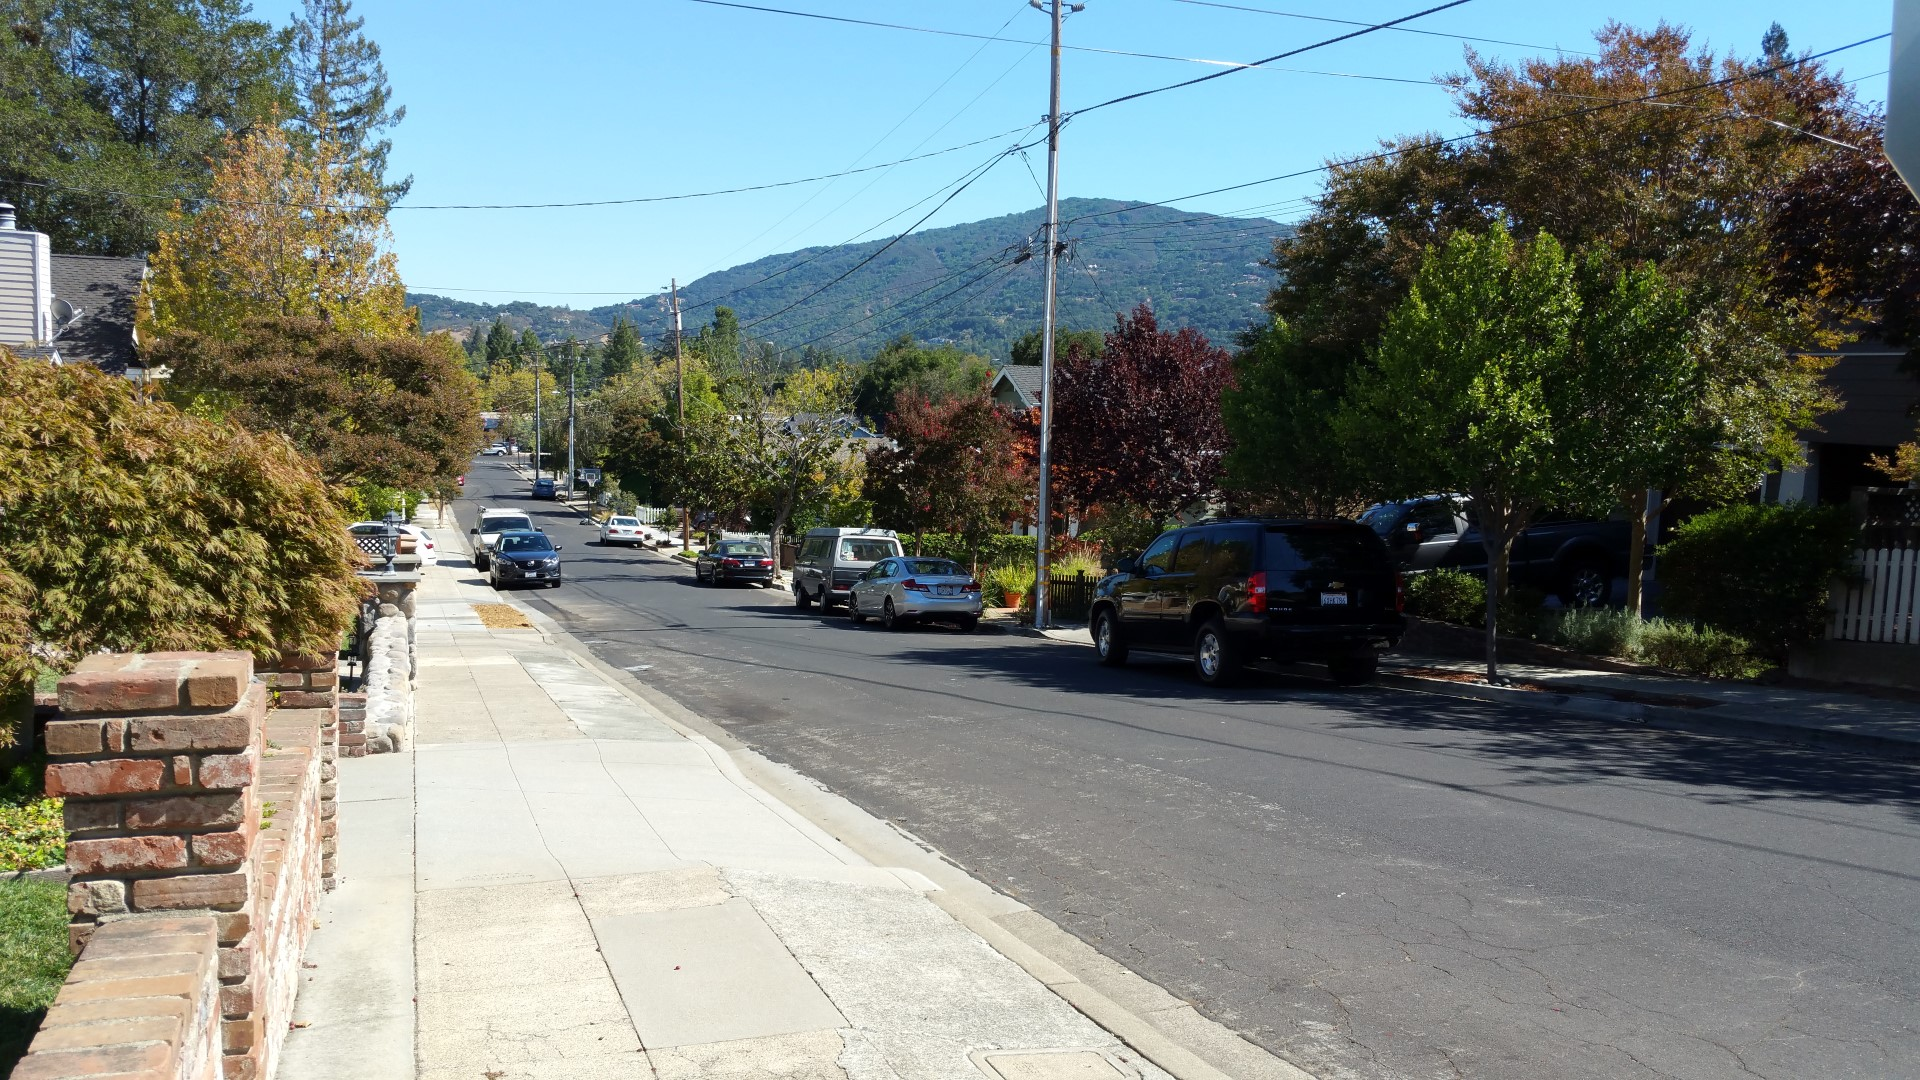 6 Ashler with view of hills1 - Creffield Heights and San Benito Avenue area